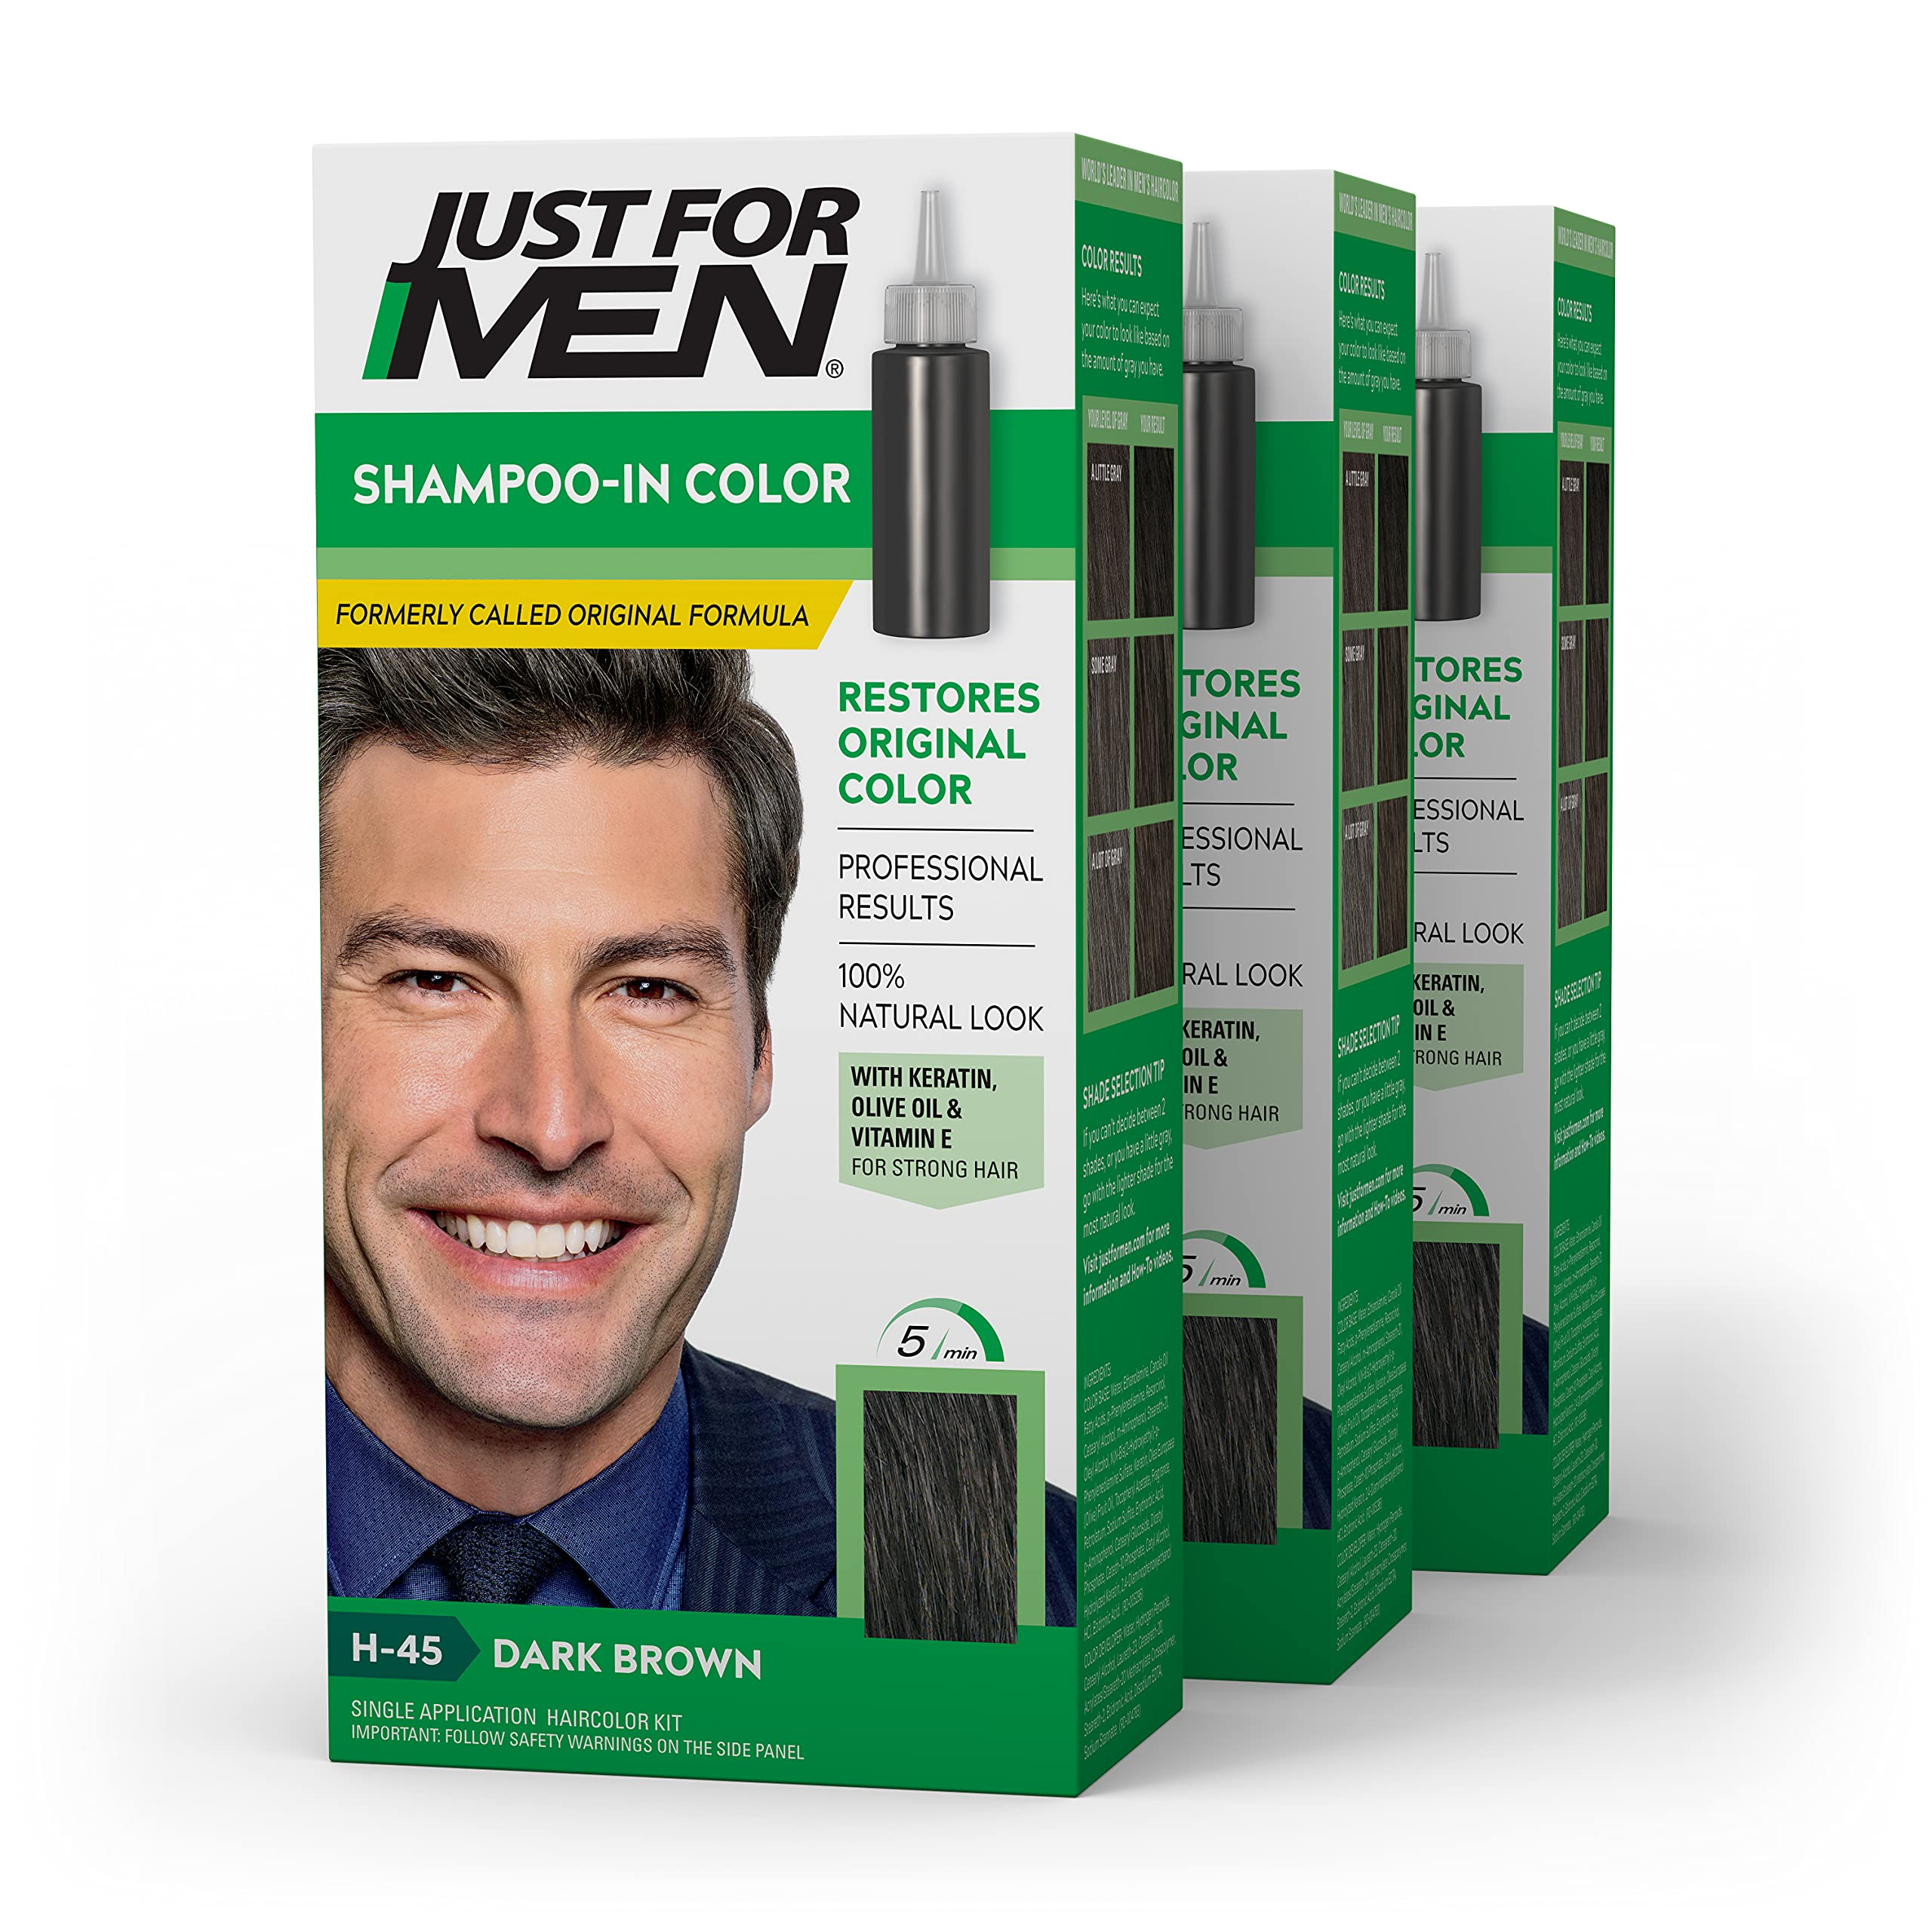 Just For Men Shampoo-In Color (Formerly Original Formula), Gray Hair Coloring for Men - Dark Brown, H-45, Pack of 3 (Packaging May Vary)